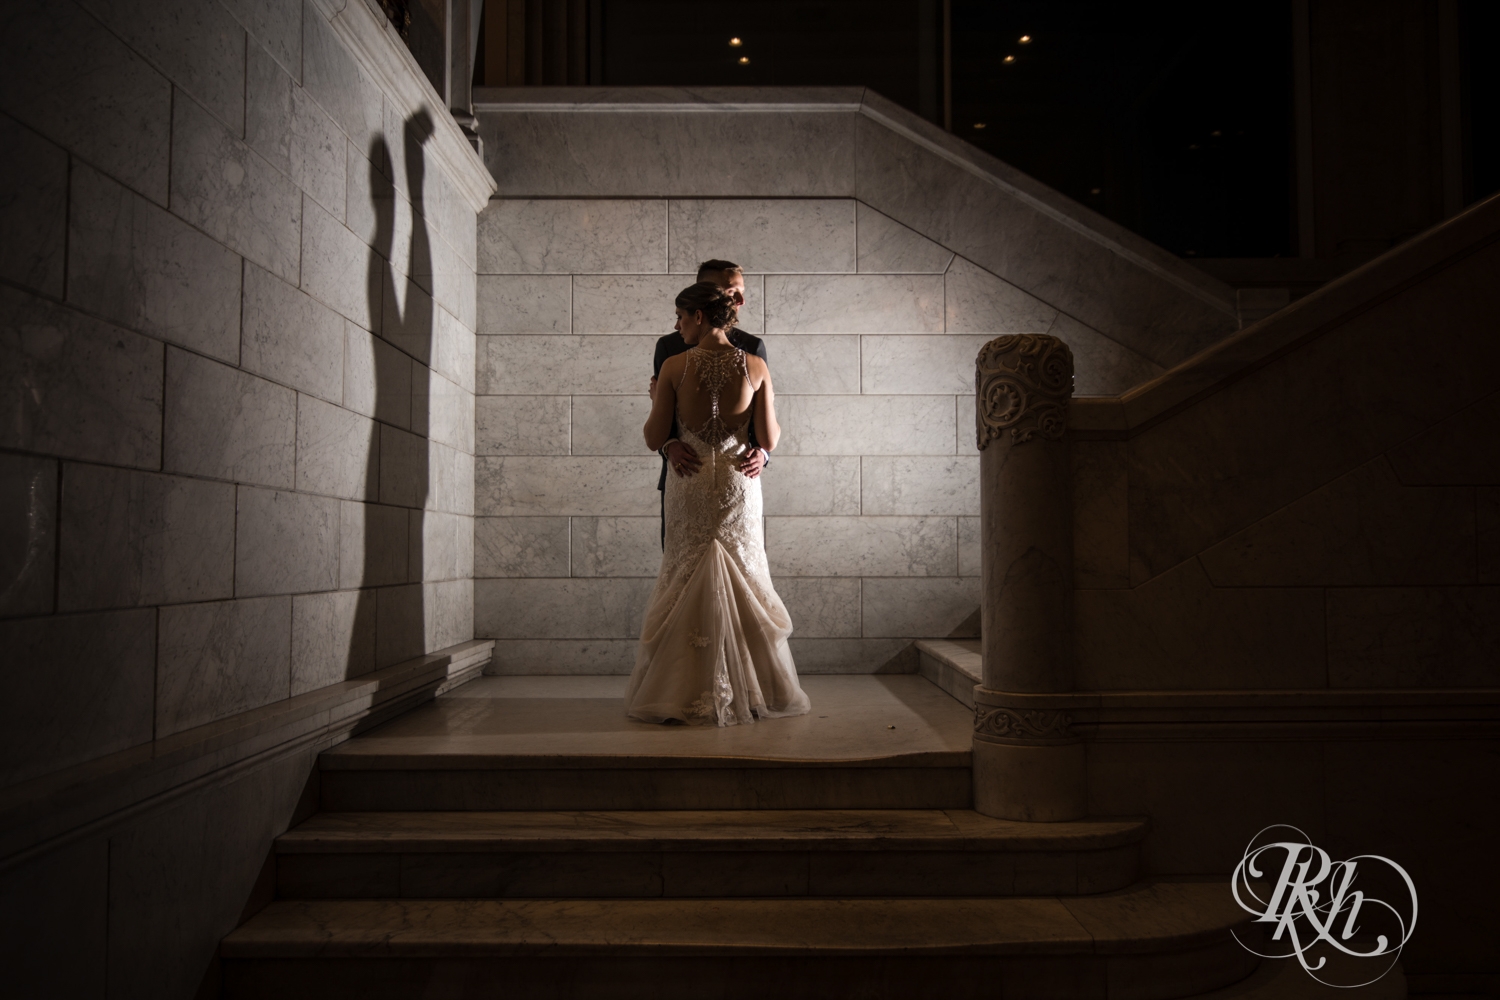 Jillian & Jared - Minnesota Wedding Photography - Lumber Exchange Event Center - RKH Images - Blog (85 of 87).jpg